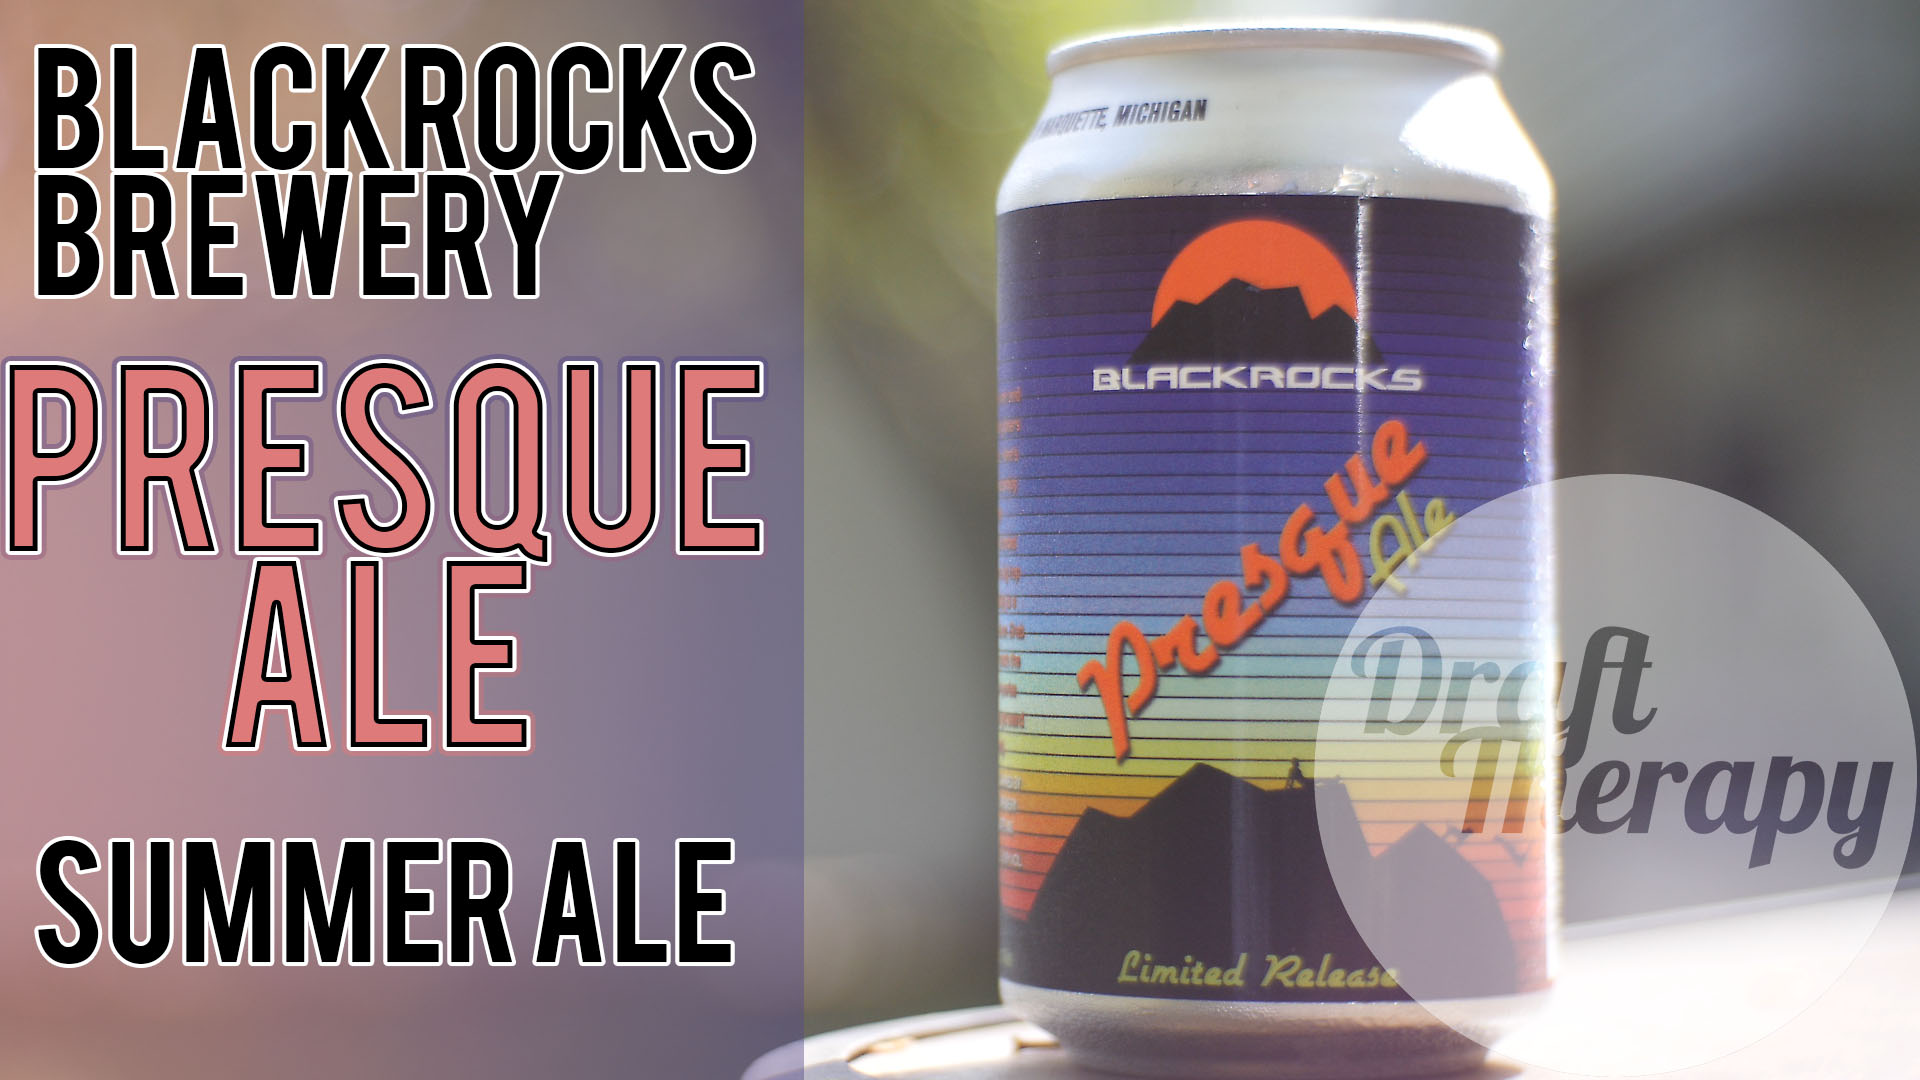 Blackrocks Brewery – Presque Ale